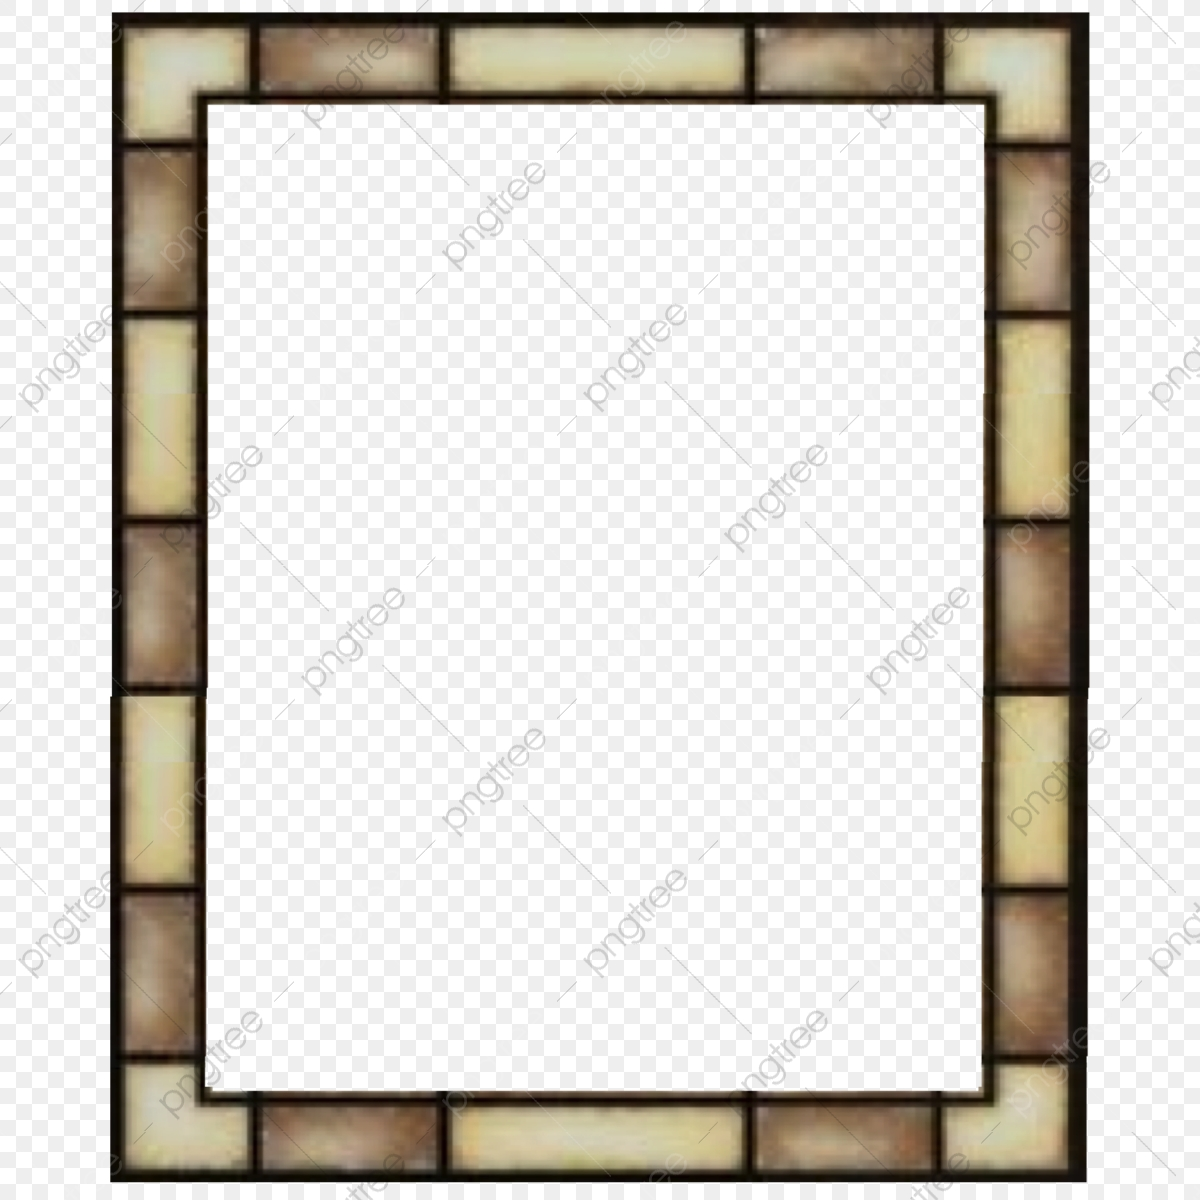 Bathroom Mirror Frame Clipart Mirror Clipart Frame Bathroom Mirror Png Transparent Clipart Image And Psd File For Free Download